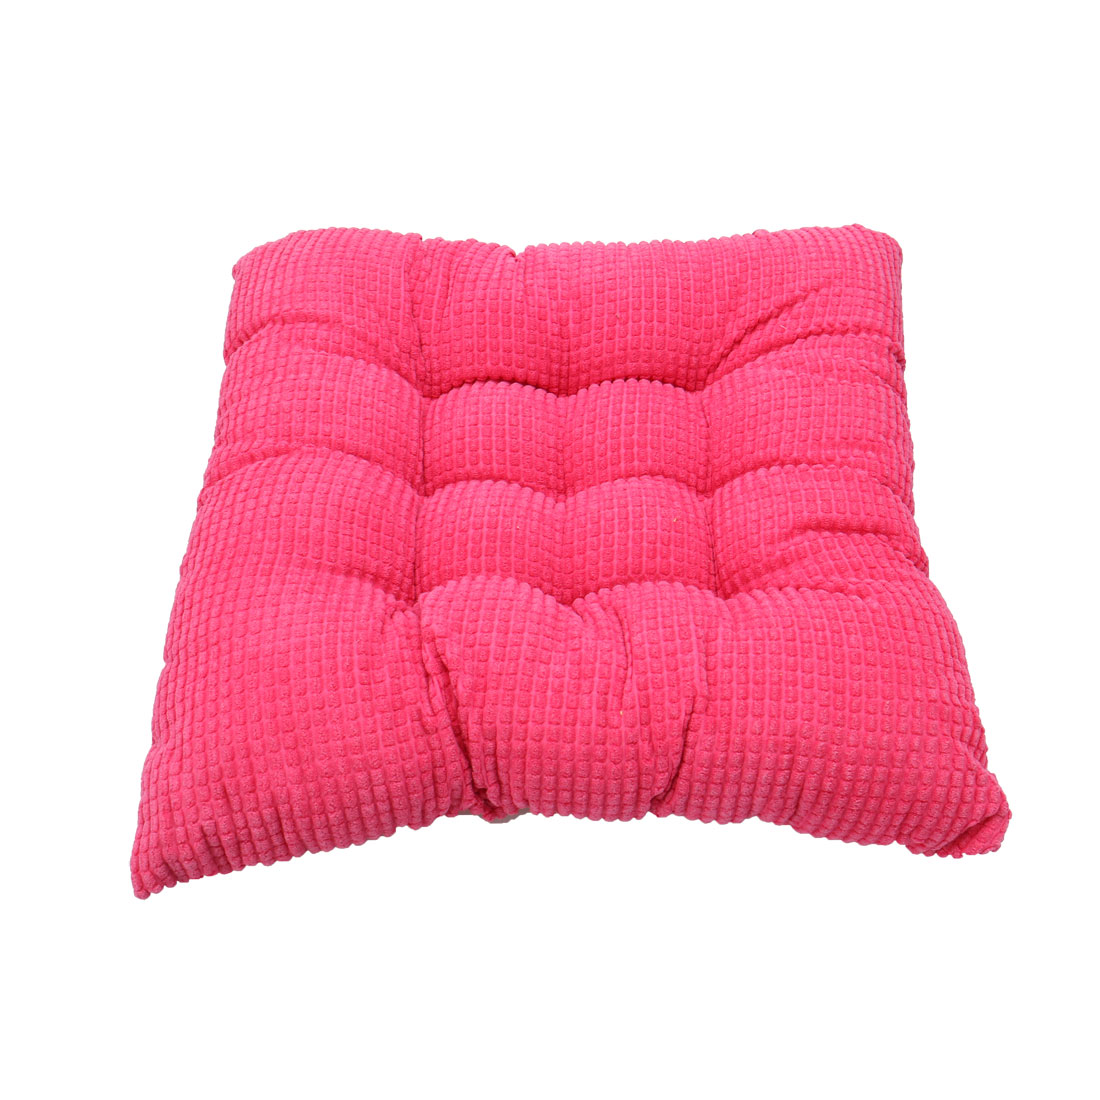 Household Office Corduroy Square Shaped Thickness Chair Cushion Carmine